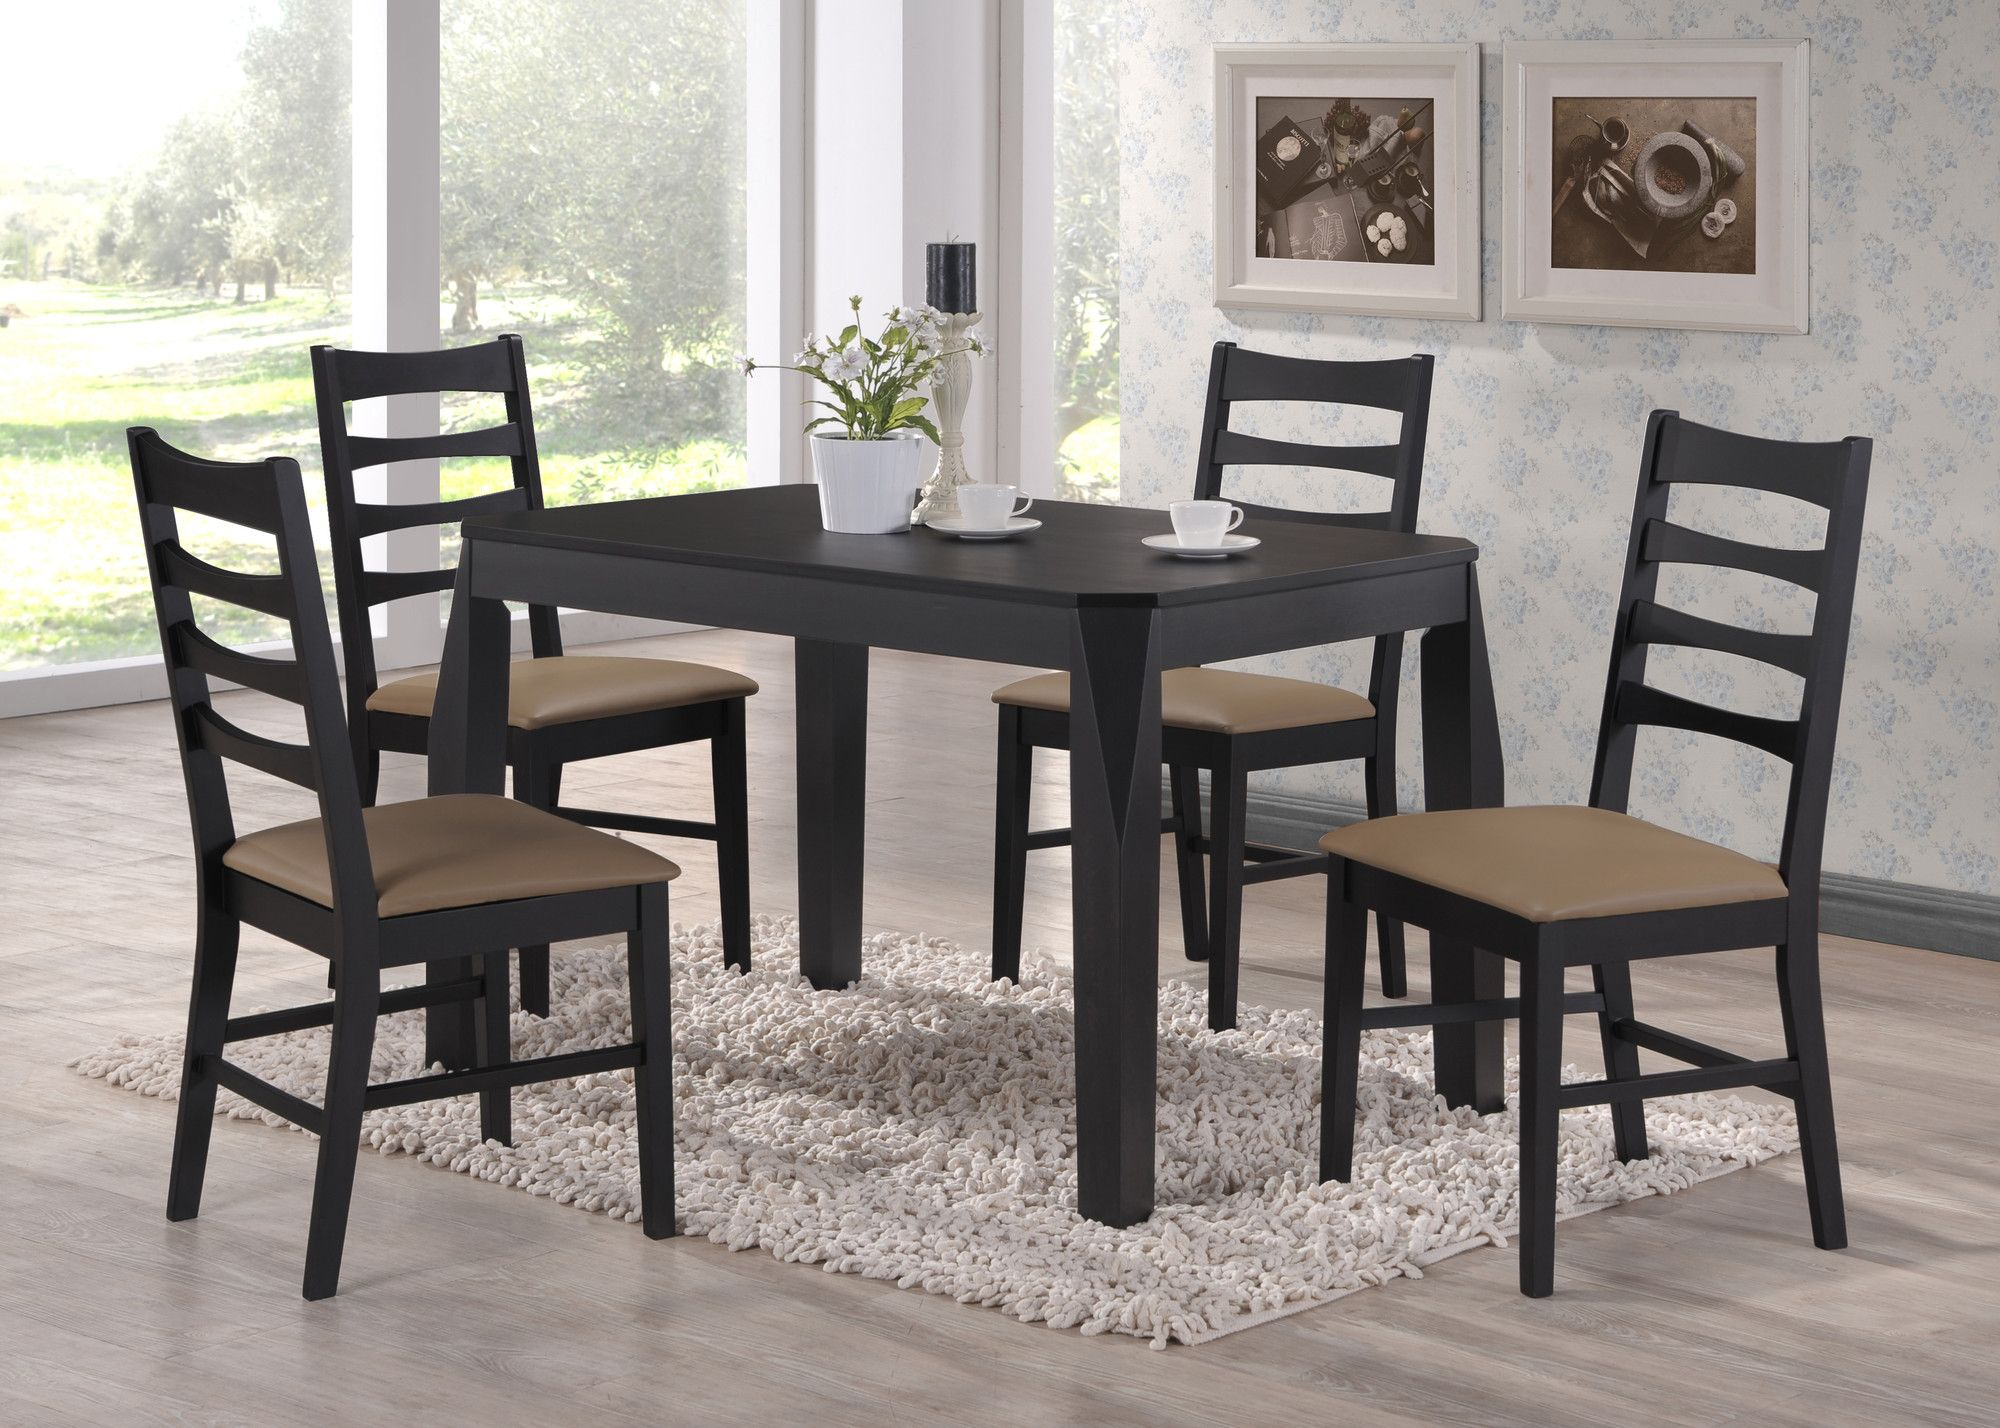 Dining Table Wayfair Small Dining Table Set Dining Table In